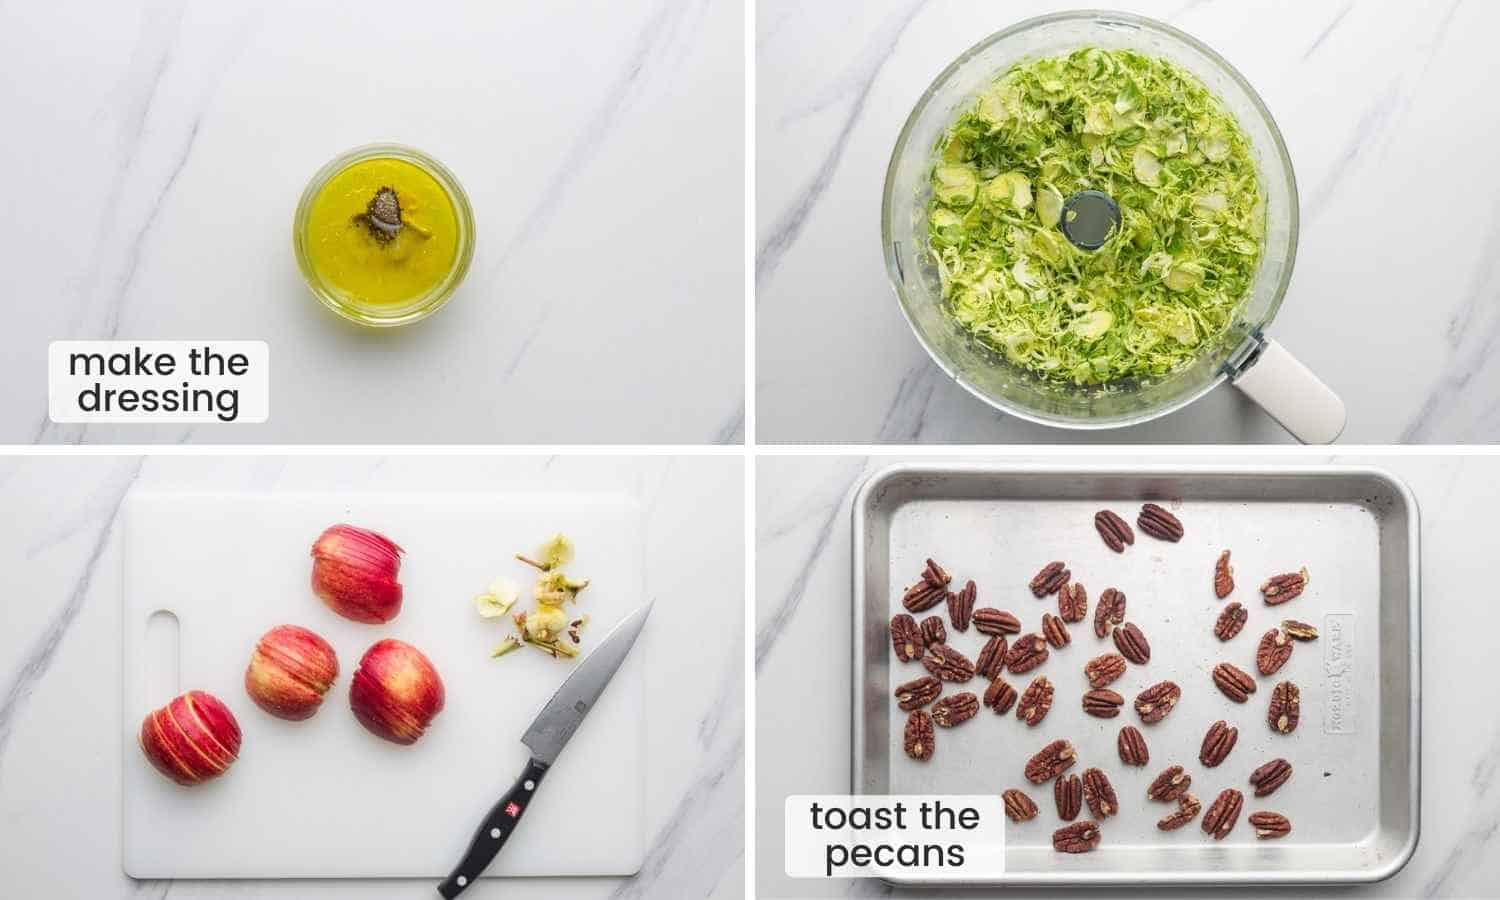 How to Prep for Shaved Brussels Sprout Salad, shown in a collage of four images. Making the dressing, shredding brussels sprouts, slicing apples, and toasting the pecans.